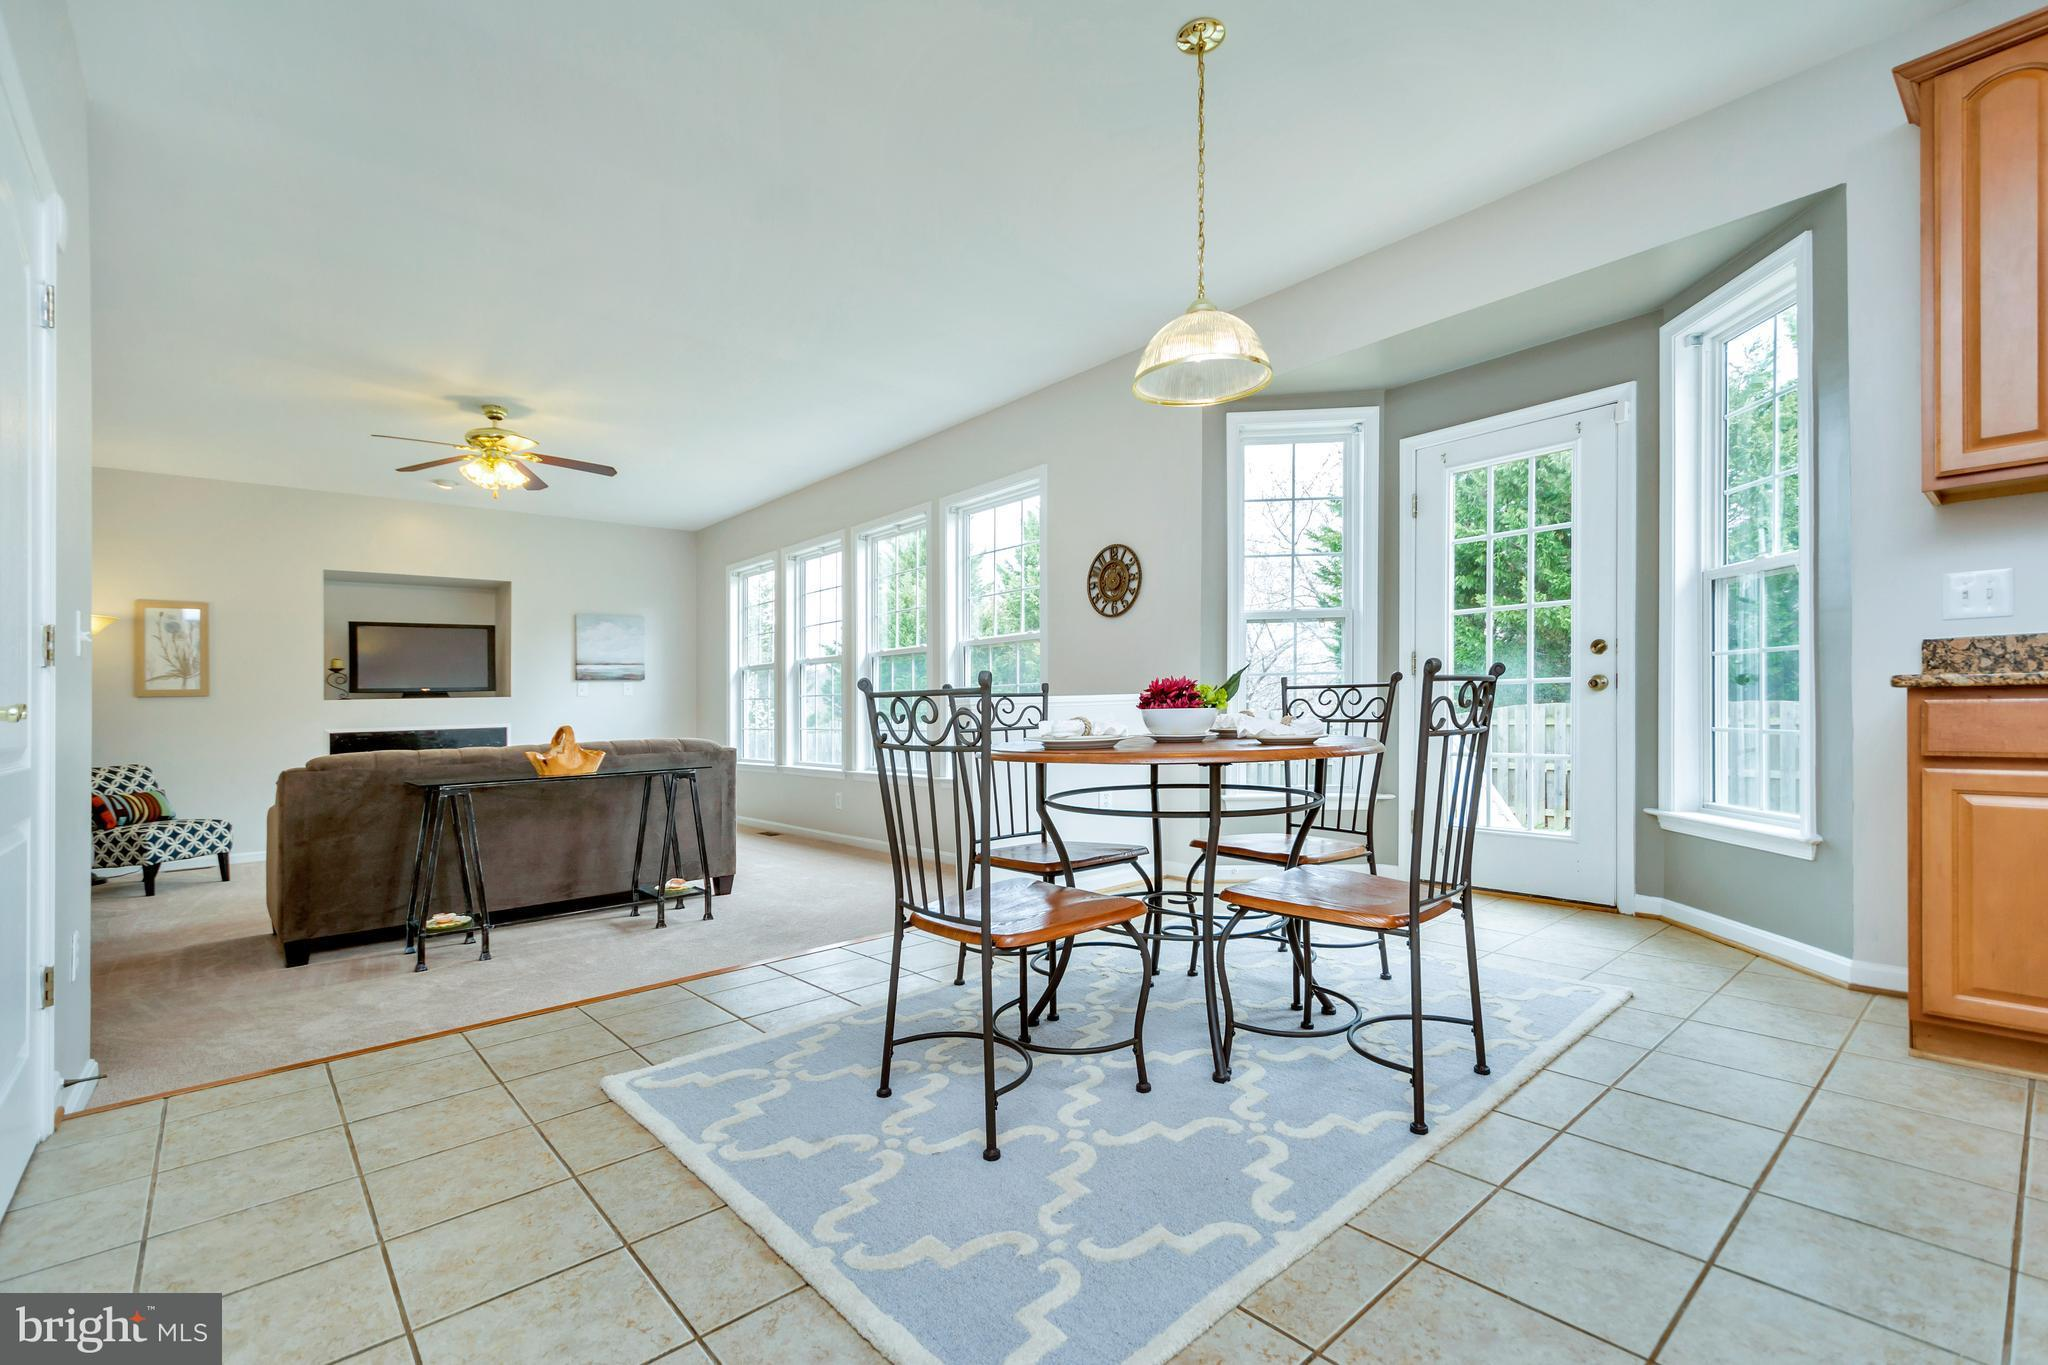 5808 TELLURIDE LANE, Spotsylvania, VA, 22553, MLS # 1000393322 | RE ...